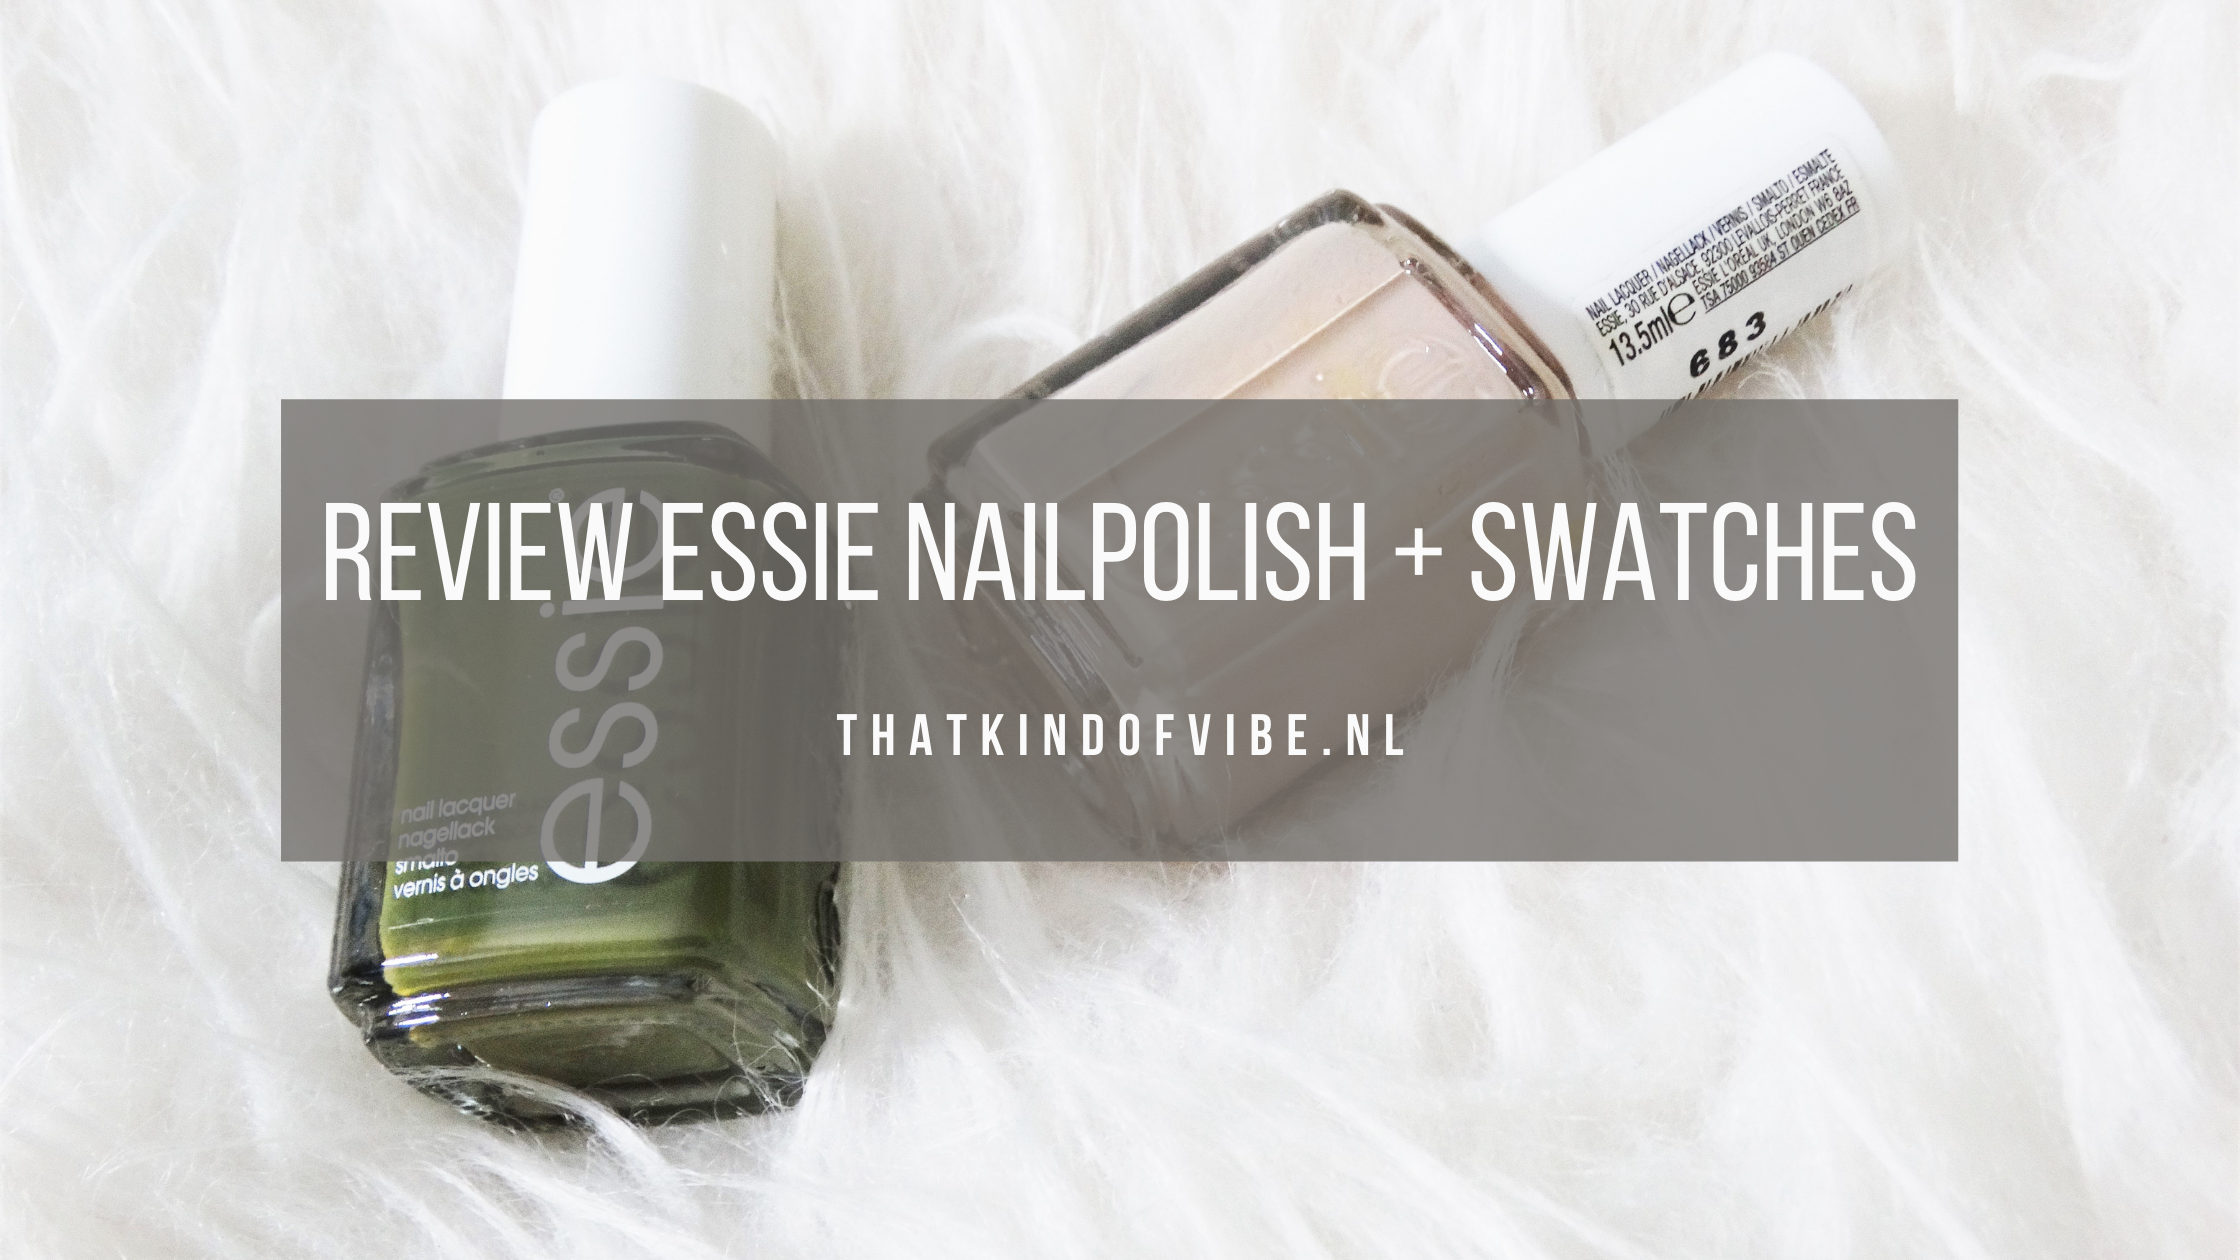 Review Essie nailpolish + swatches